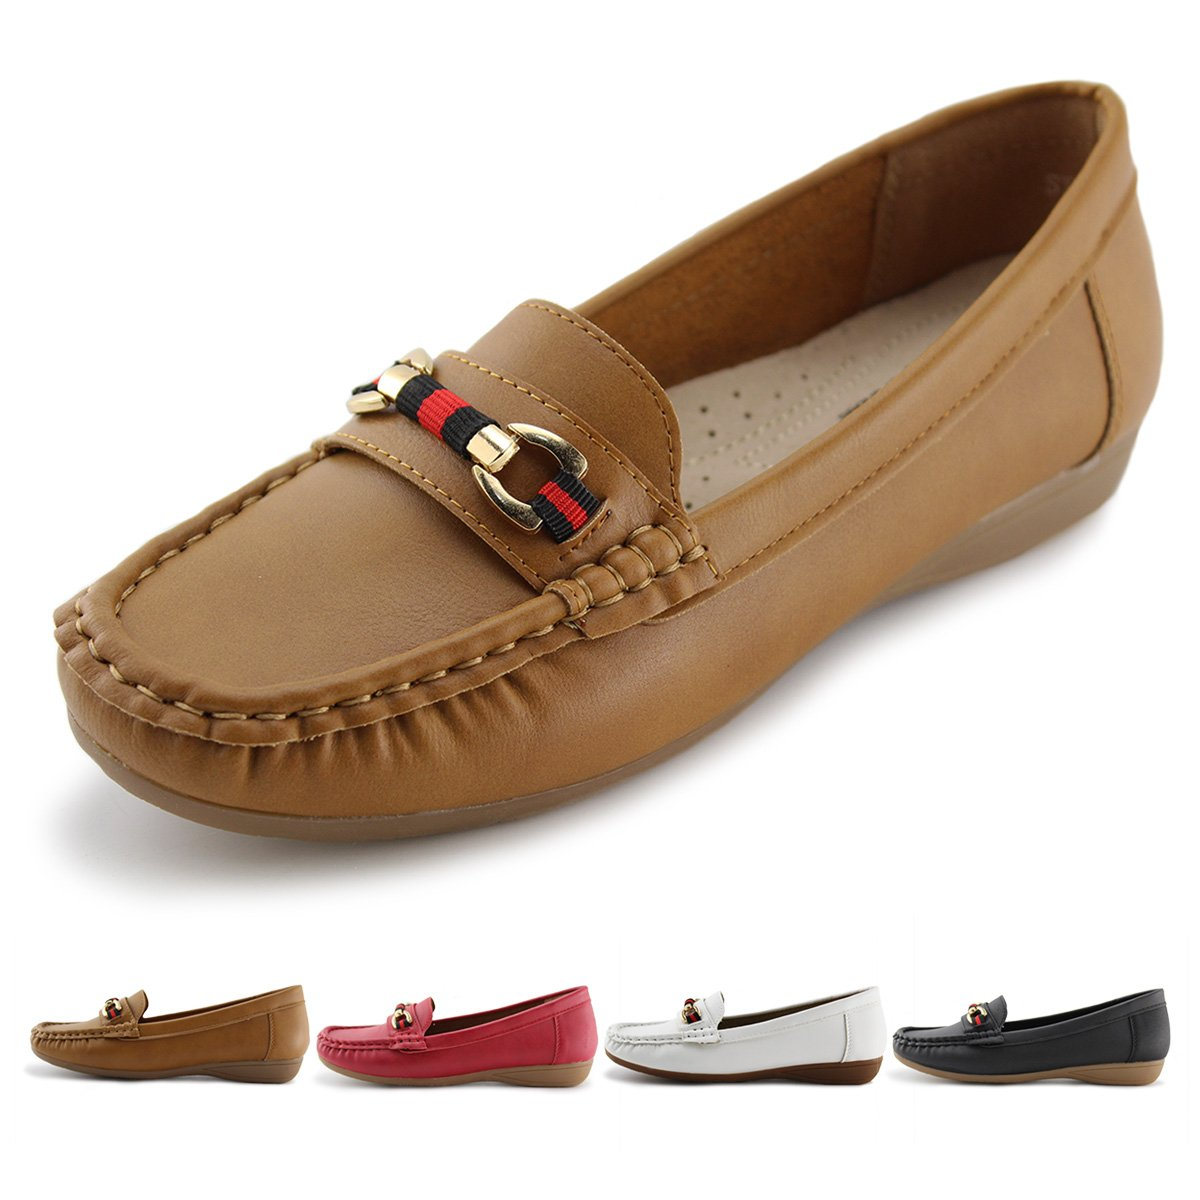 Jabasic Women's Slip-on Loafers Flat Casual Driving Shoes (10 B(M) US, Brown-1)